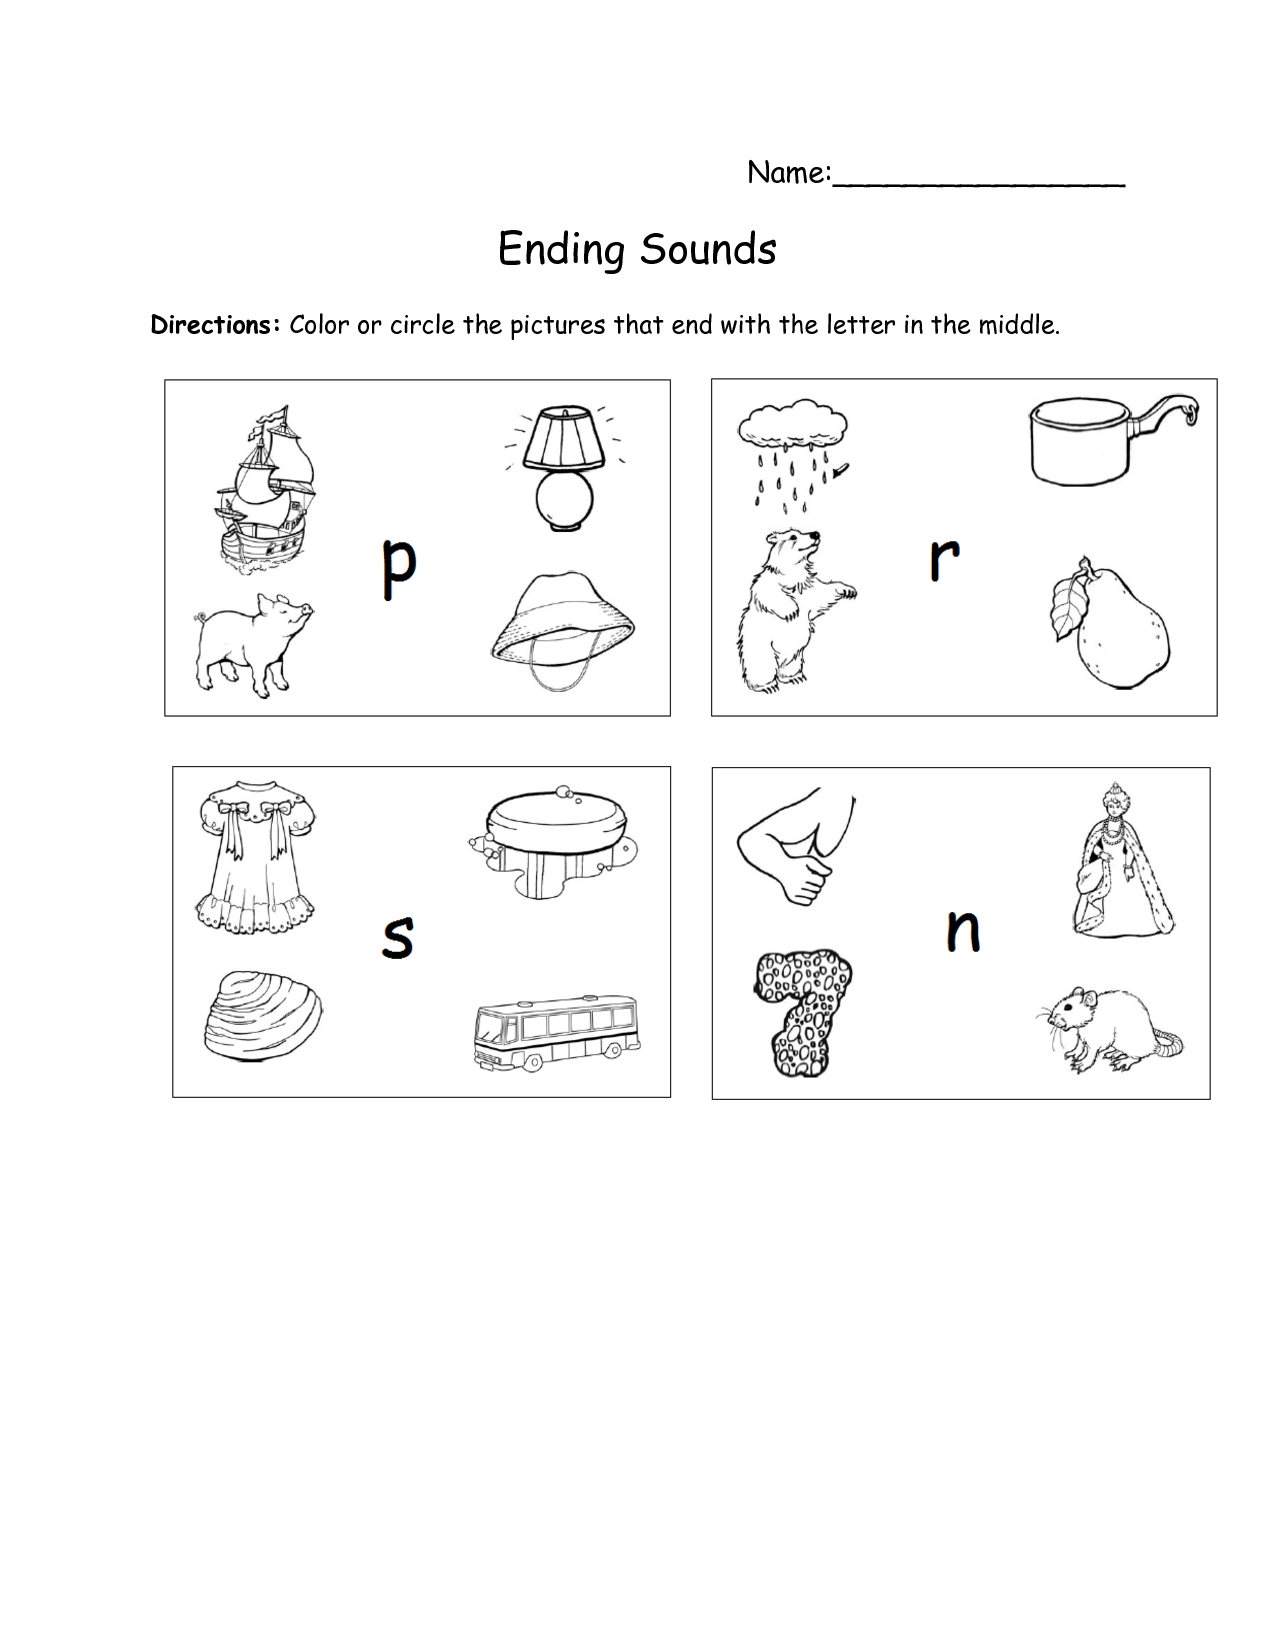 Ending Sounds Worksheet For Preschool